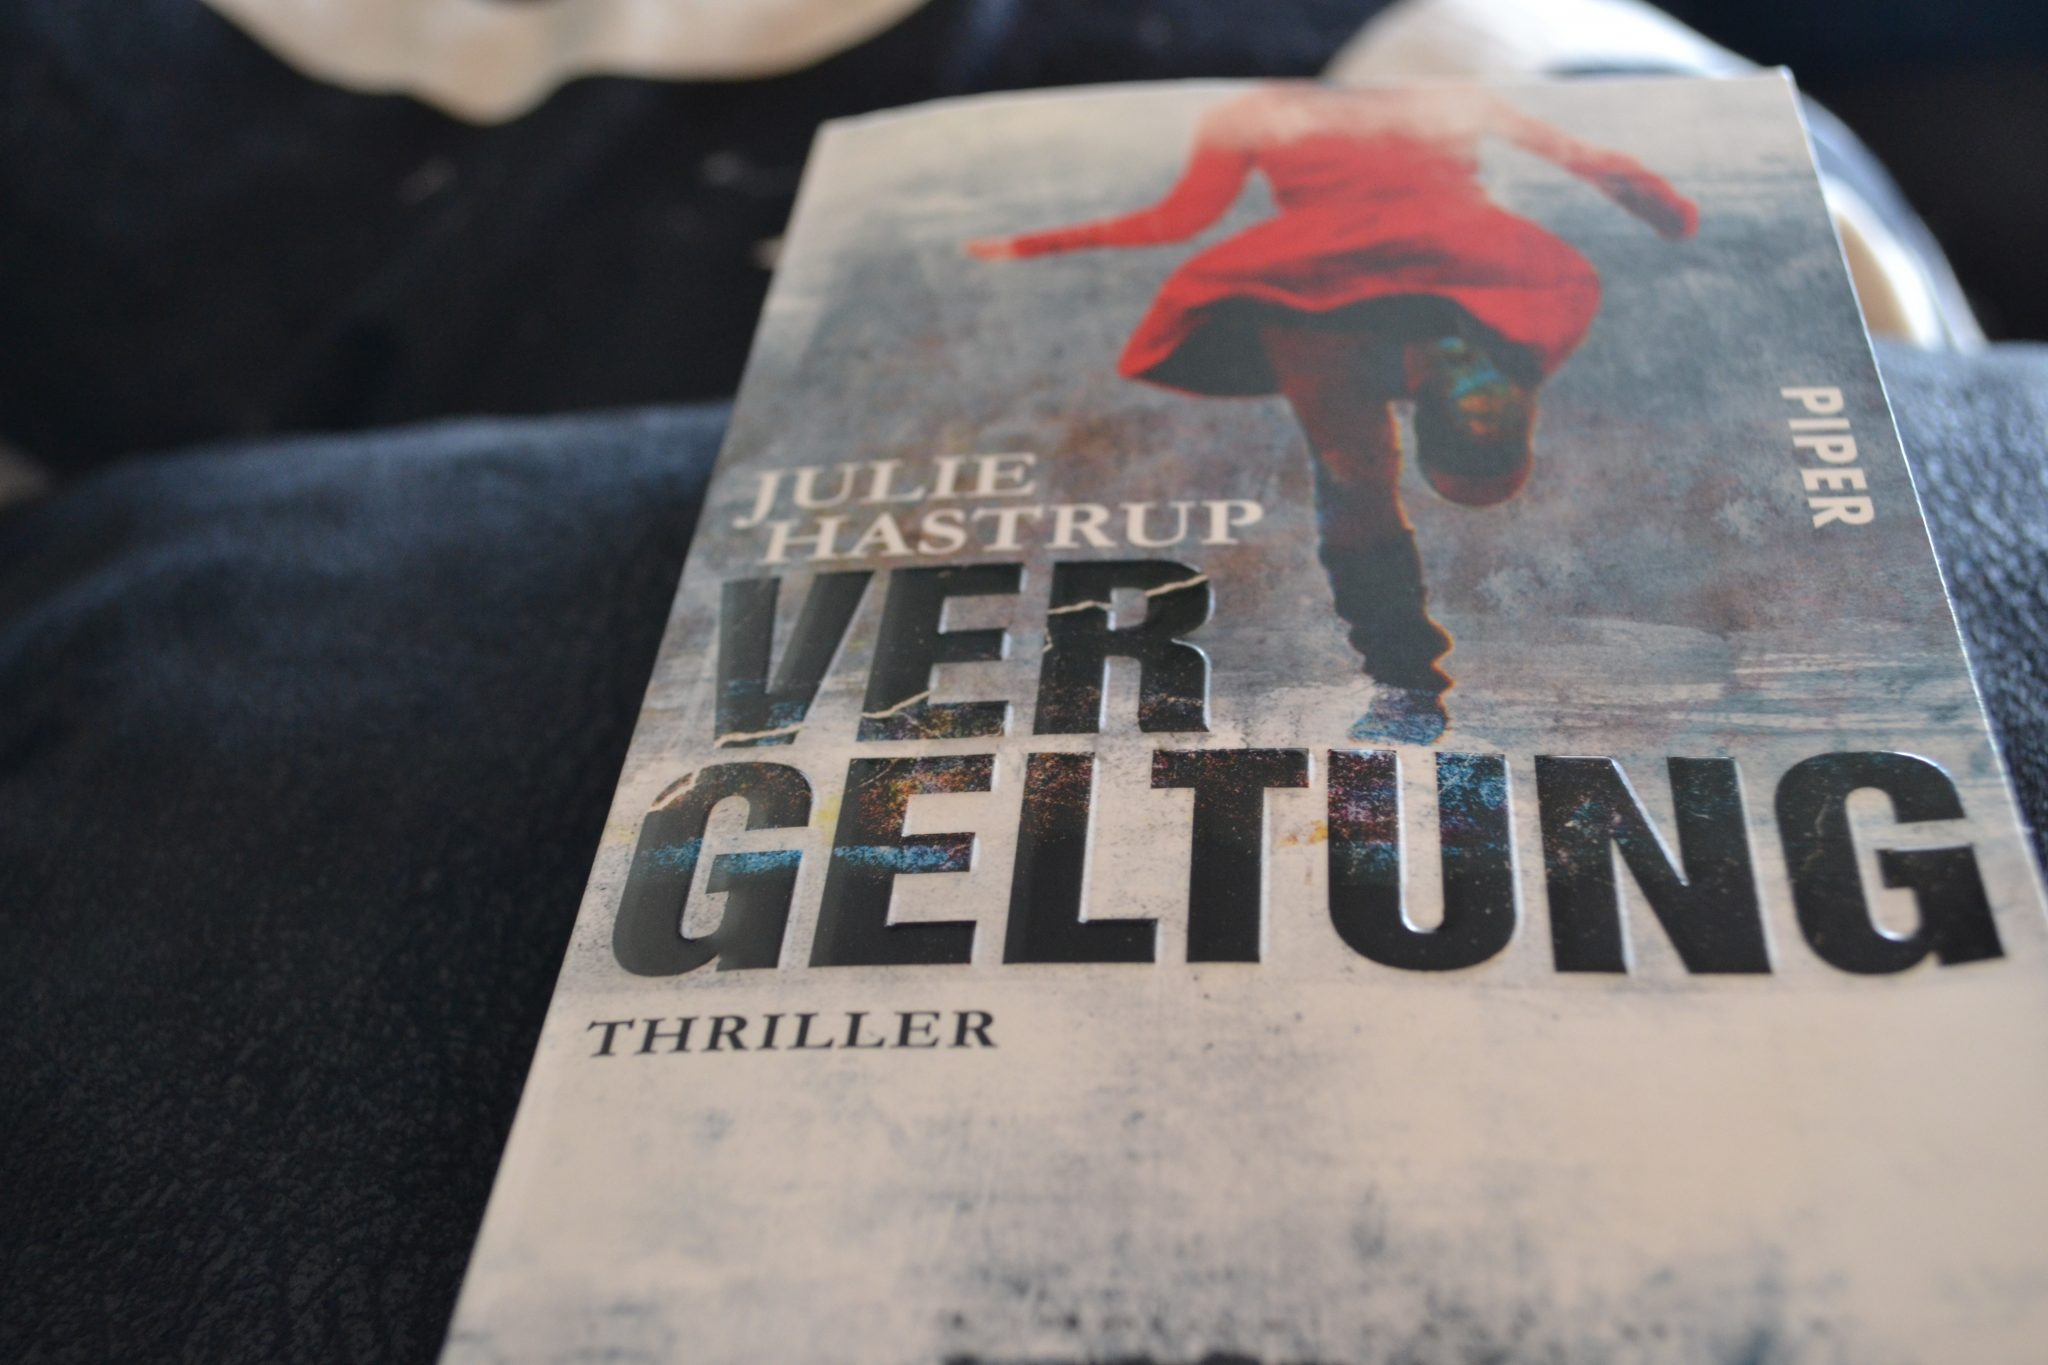 Books: Vergeltung | Julie Hastrup